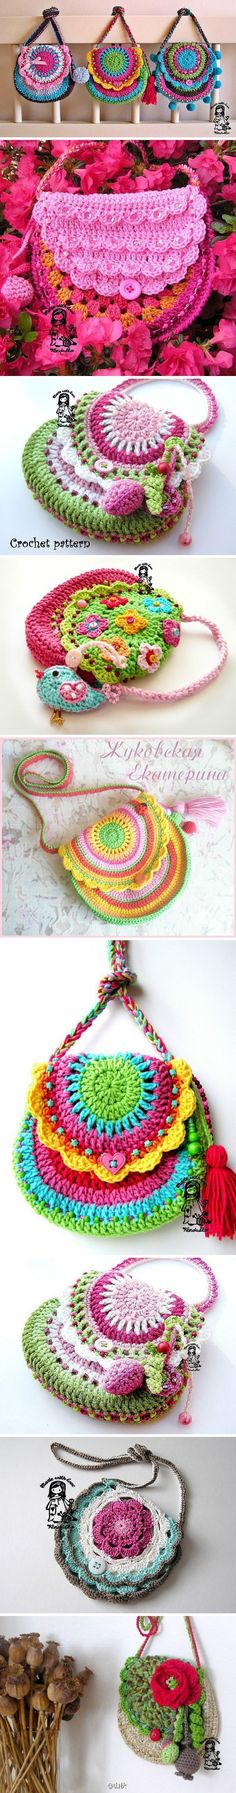 Lots of crochet bags